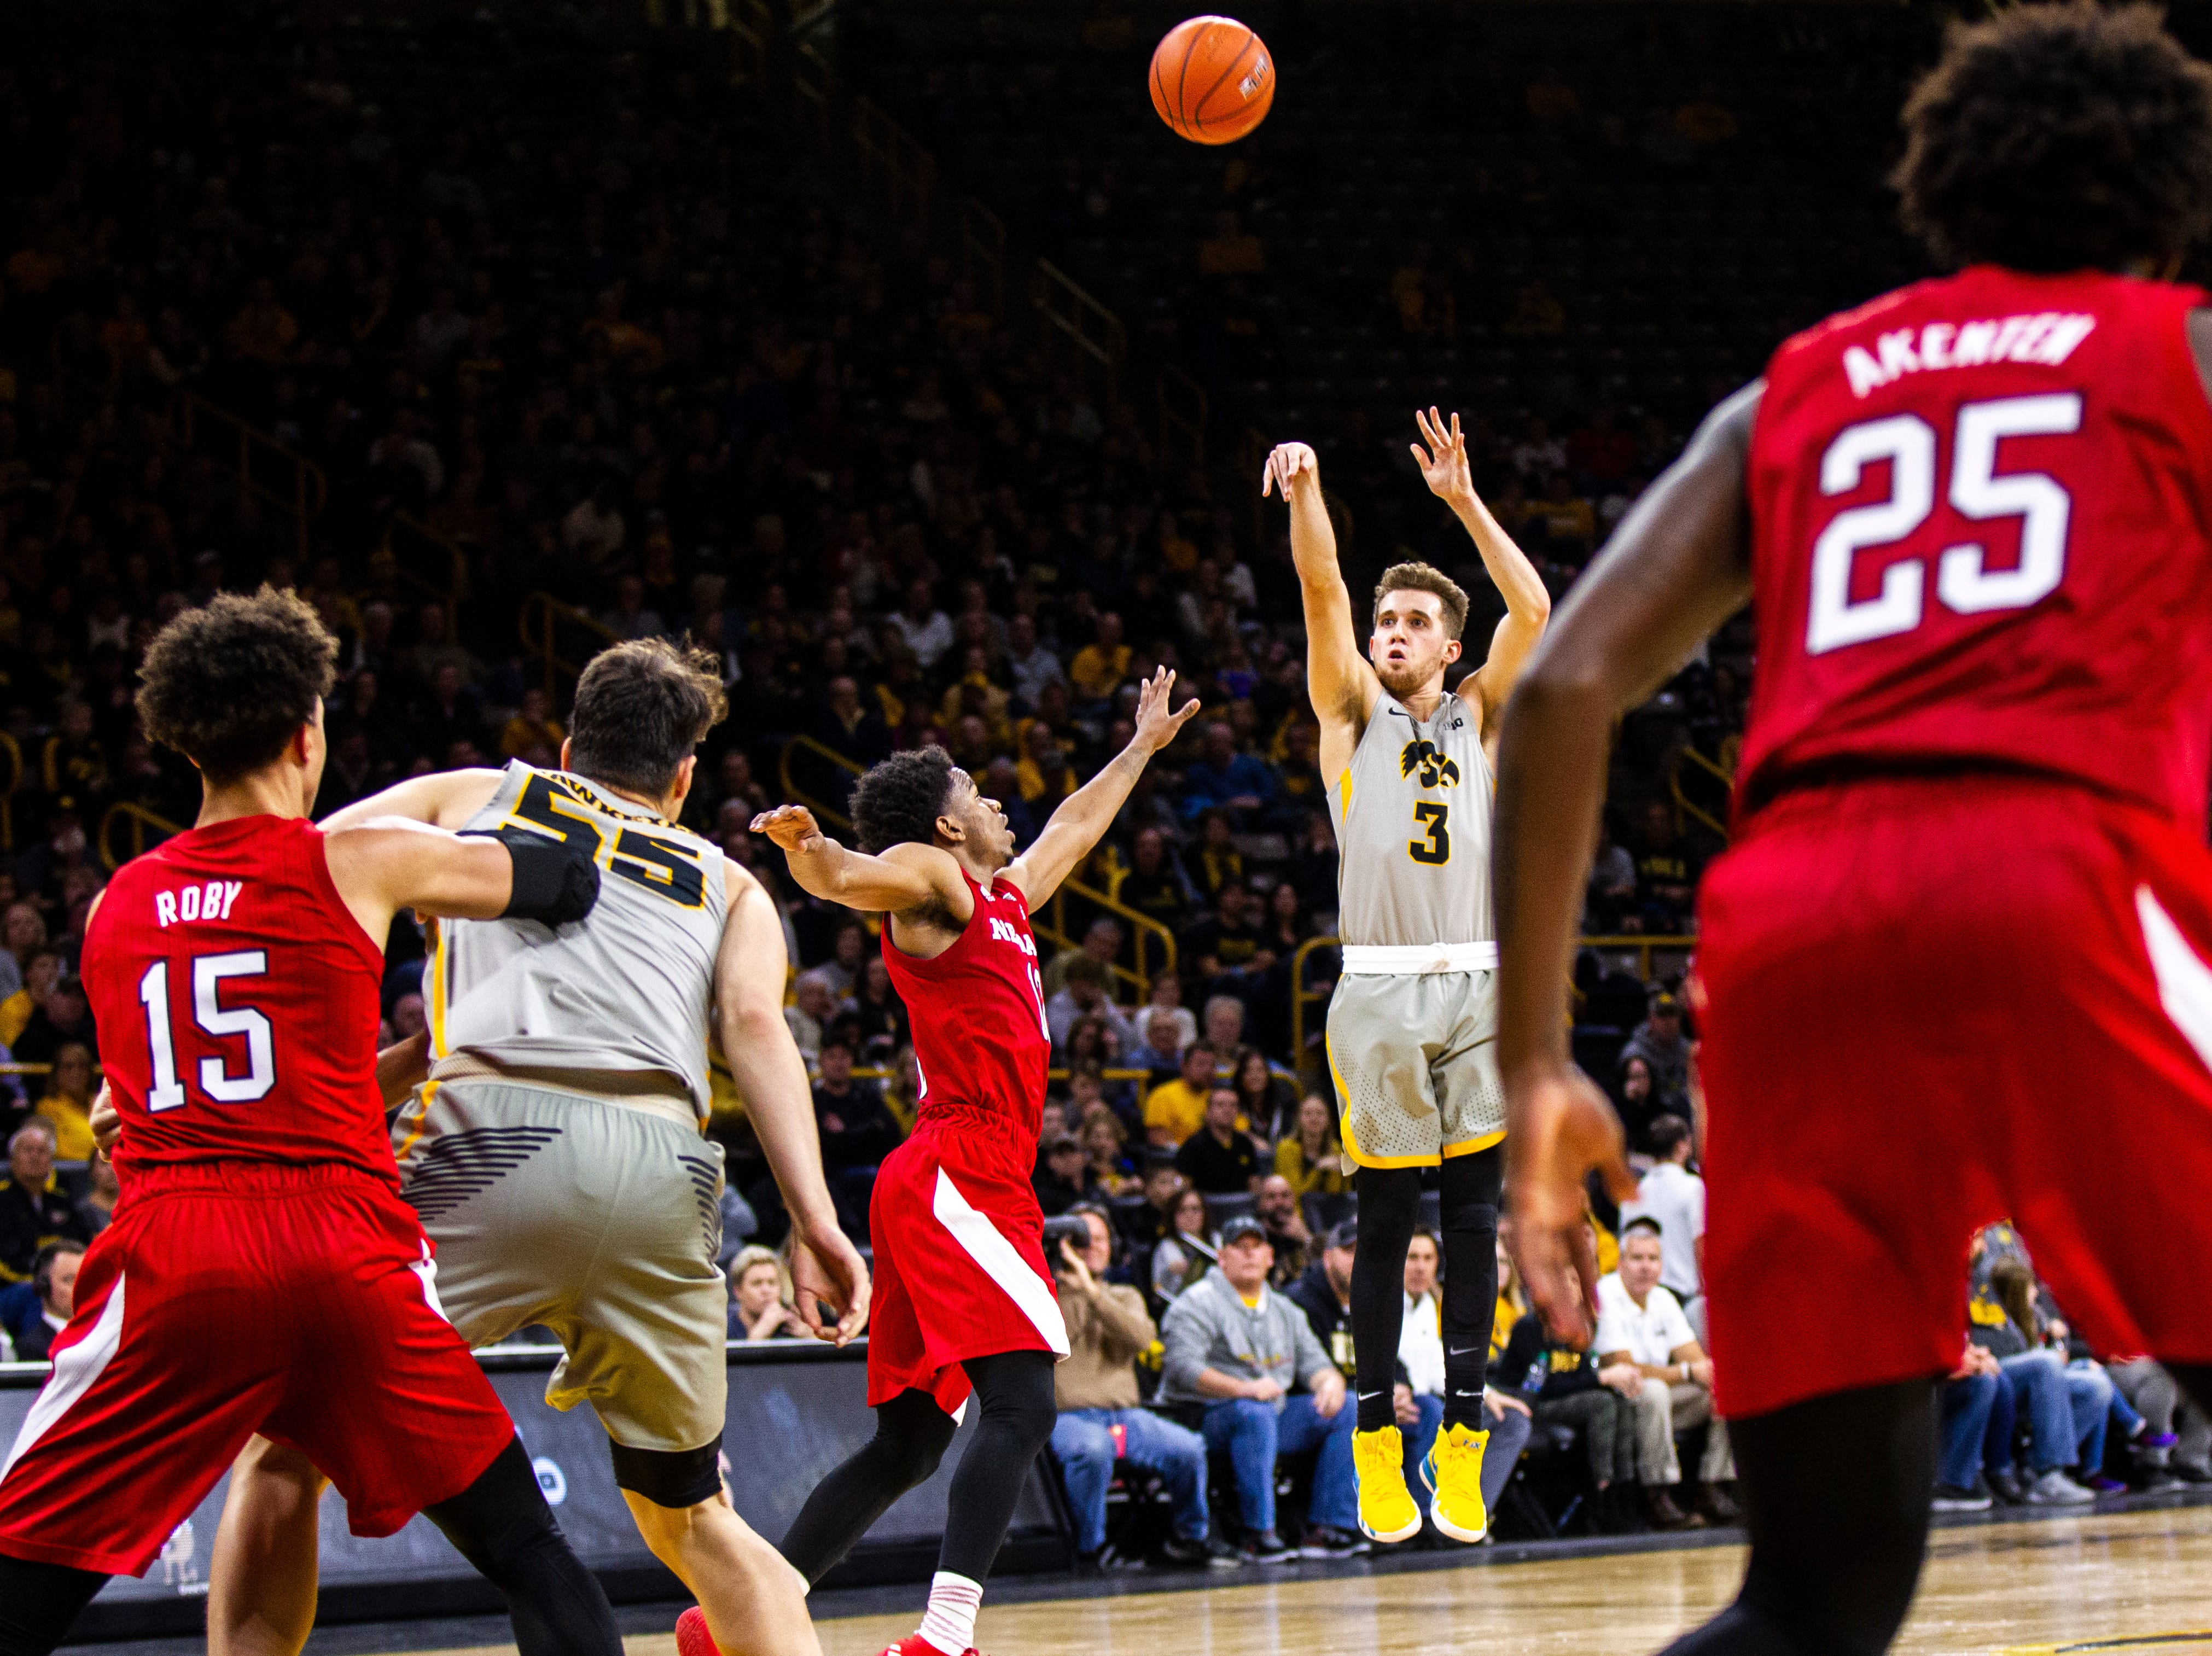 Iowa guard Jordan Bohannon (3) shoots a 3-point basket while being defended by Nebraska guard Thomas Allen (12) during a NCAA Big Ten Conference men's basketball game on Sunday, Jan. 6, 2019, at the Carver-Hawkeye Arena in Iowa City, Iowa.